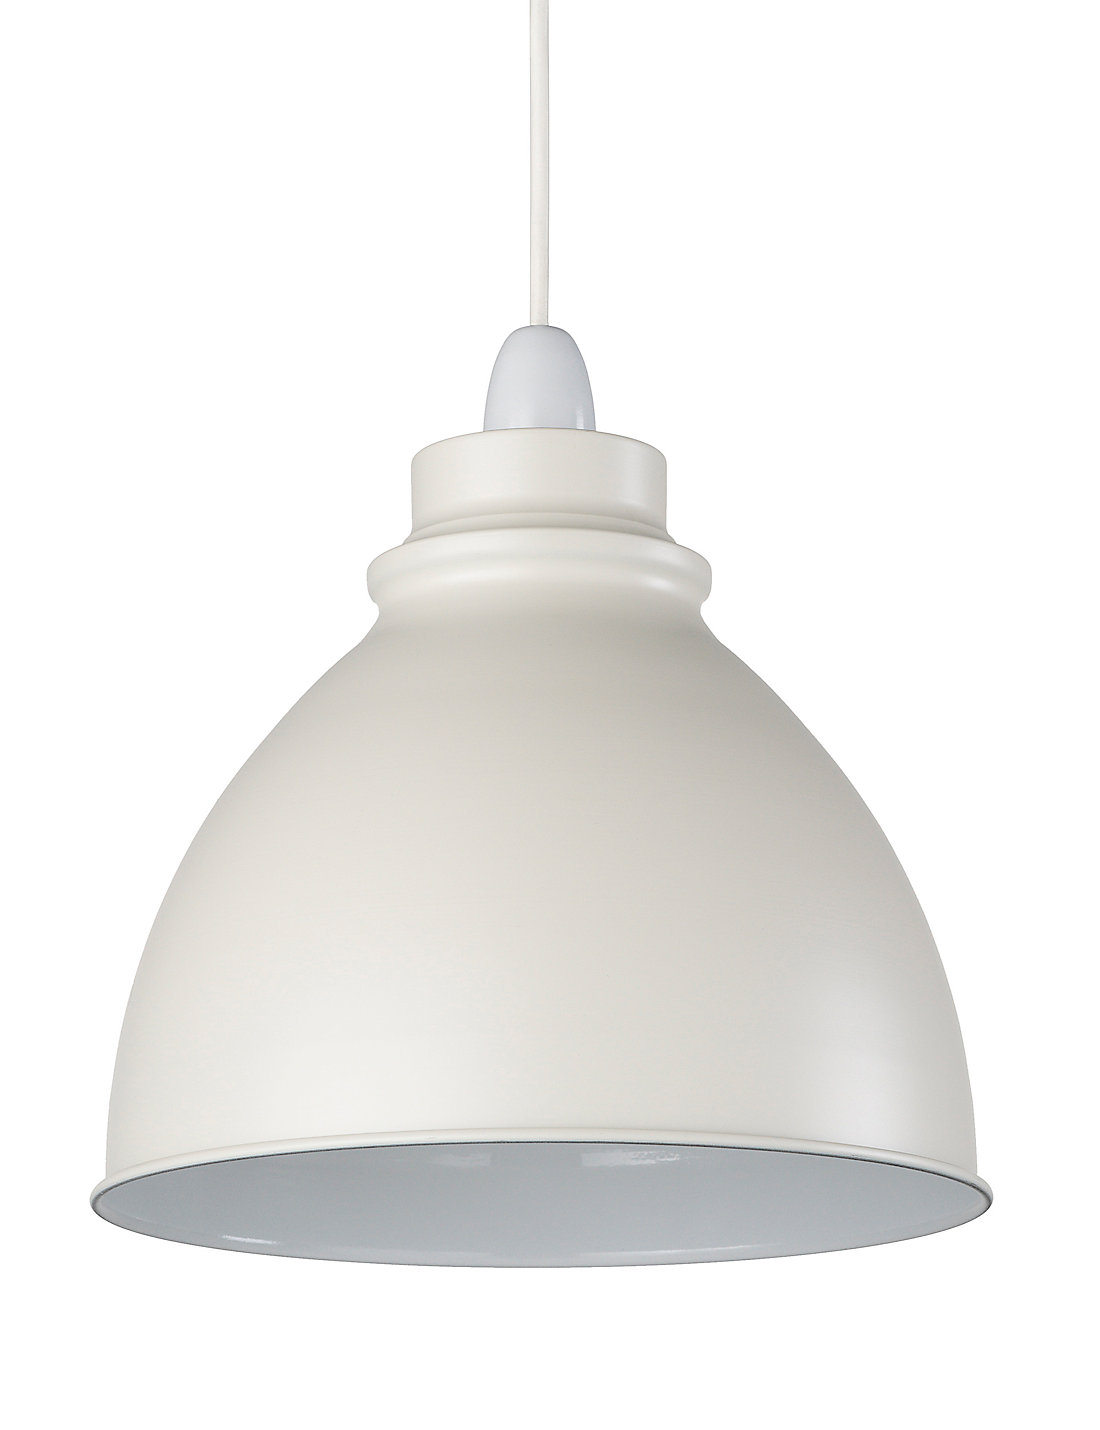 Small Ceiling Shades